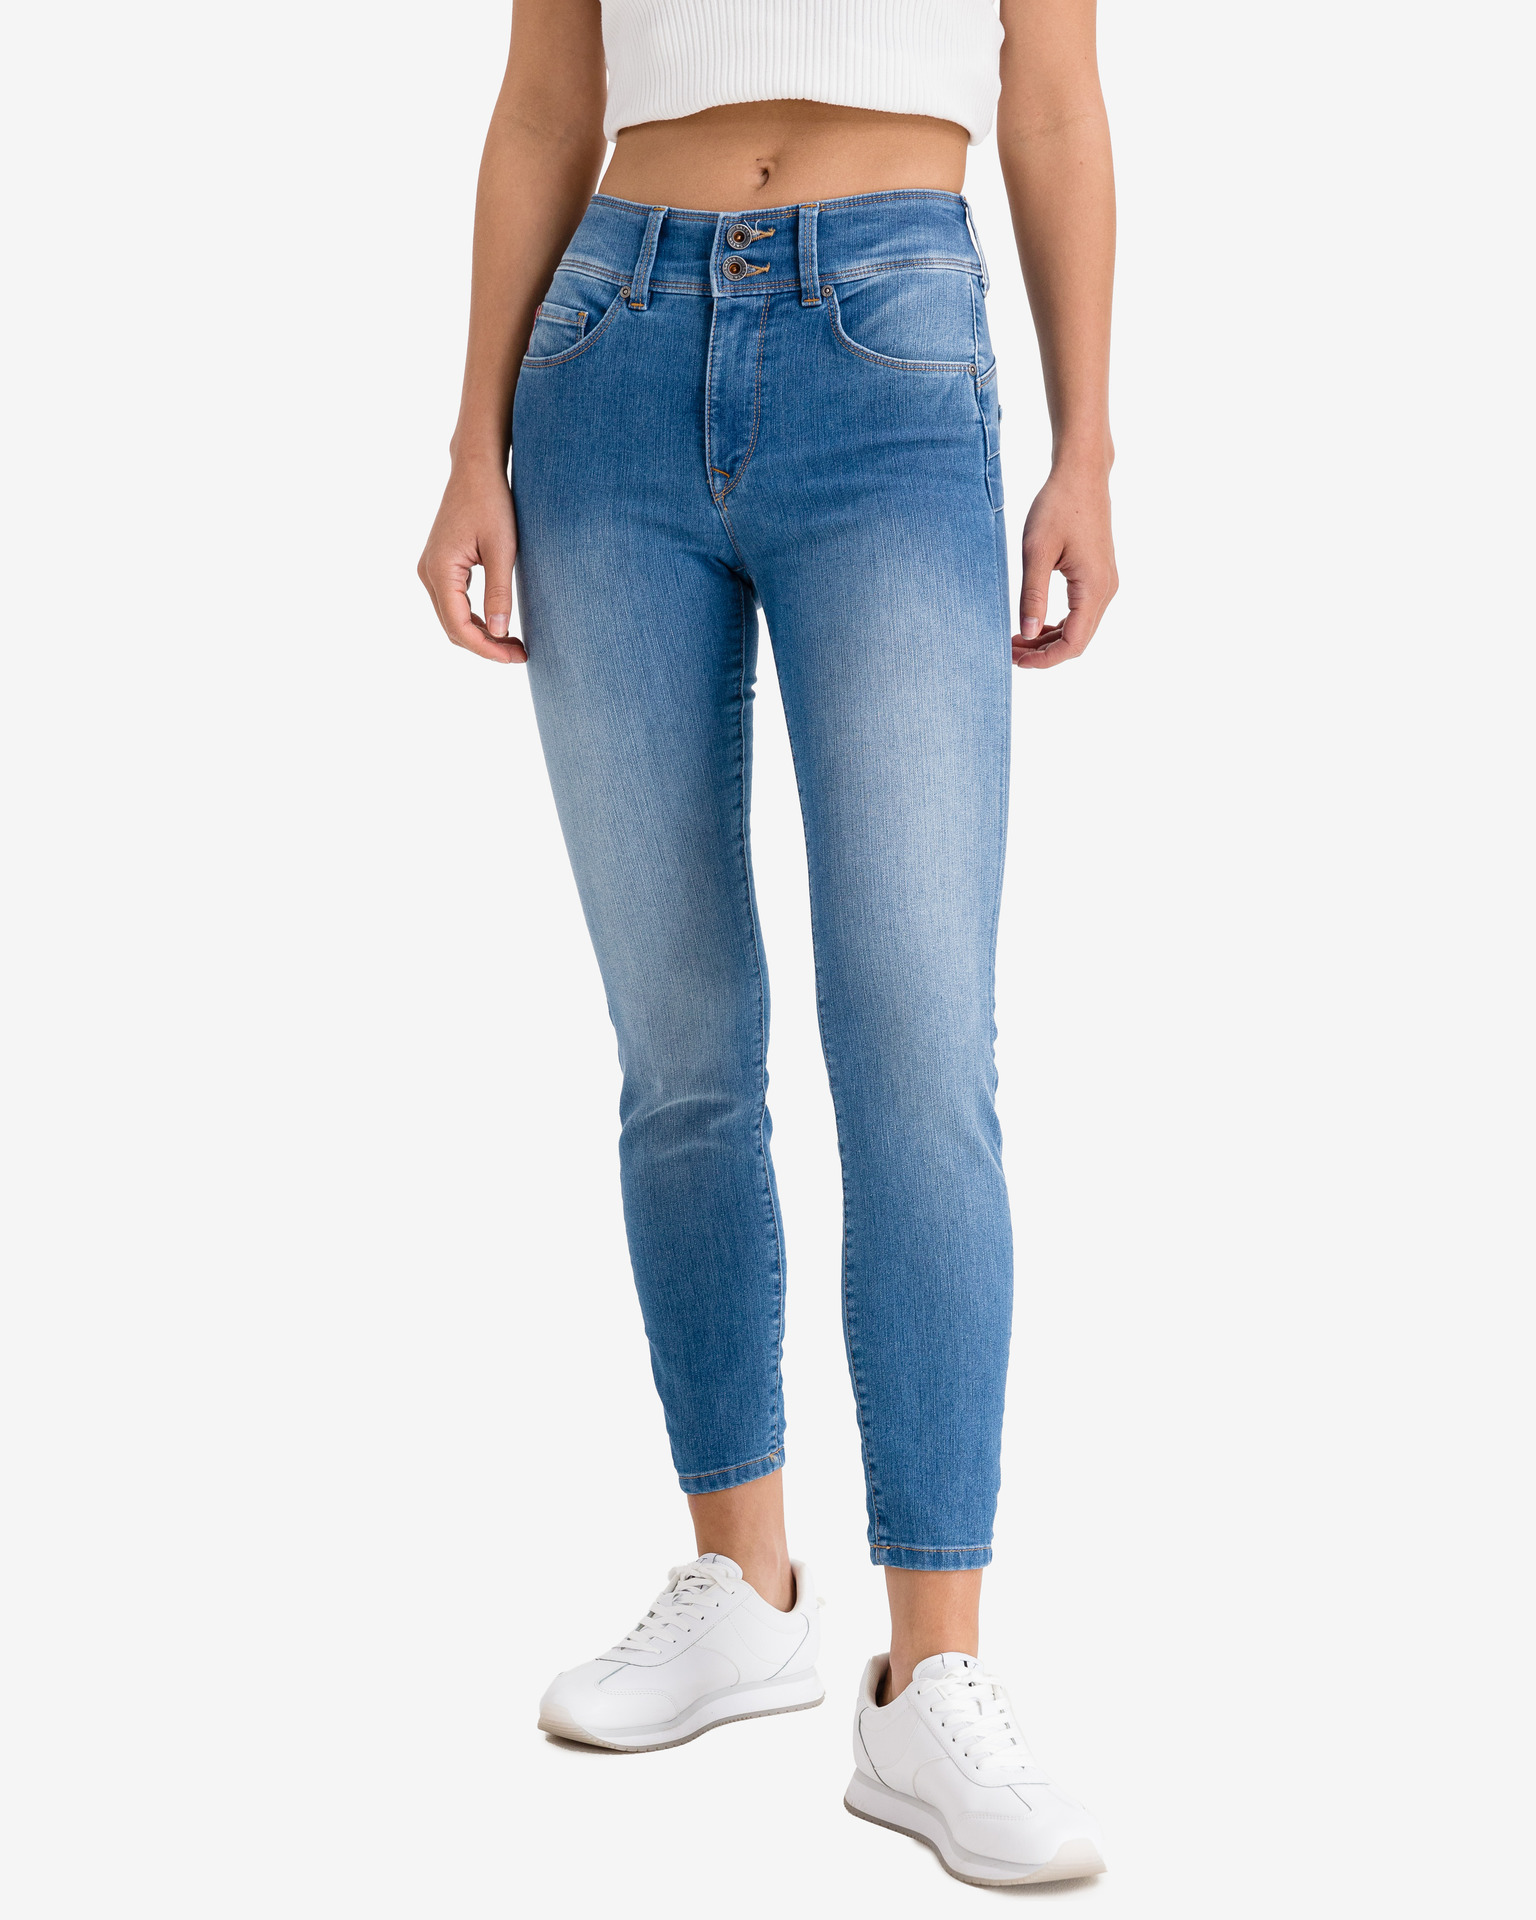 Secret Push In Jeans Salsa Jeans